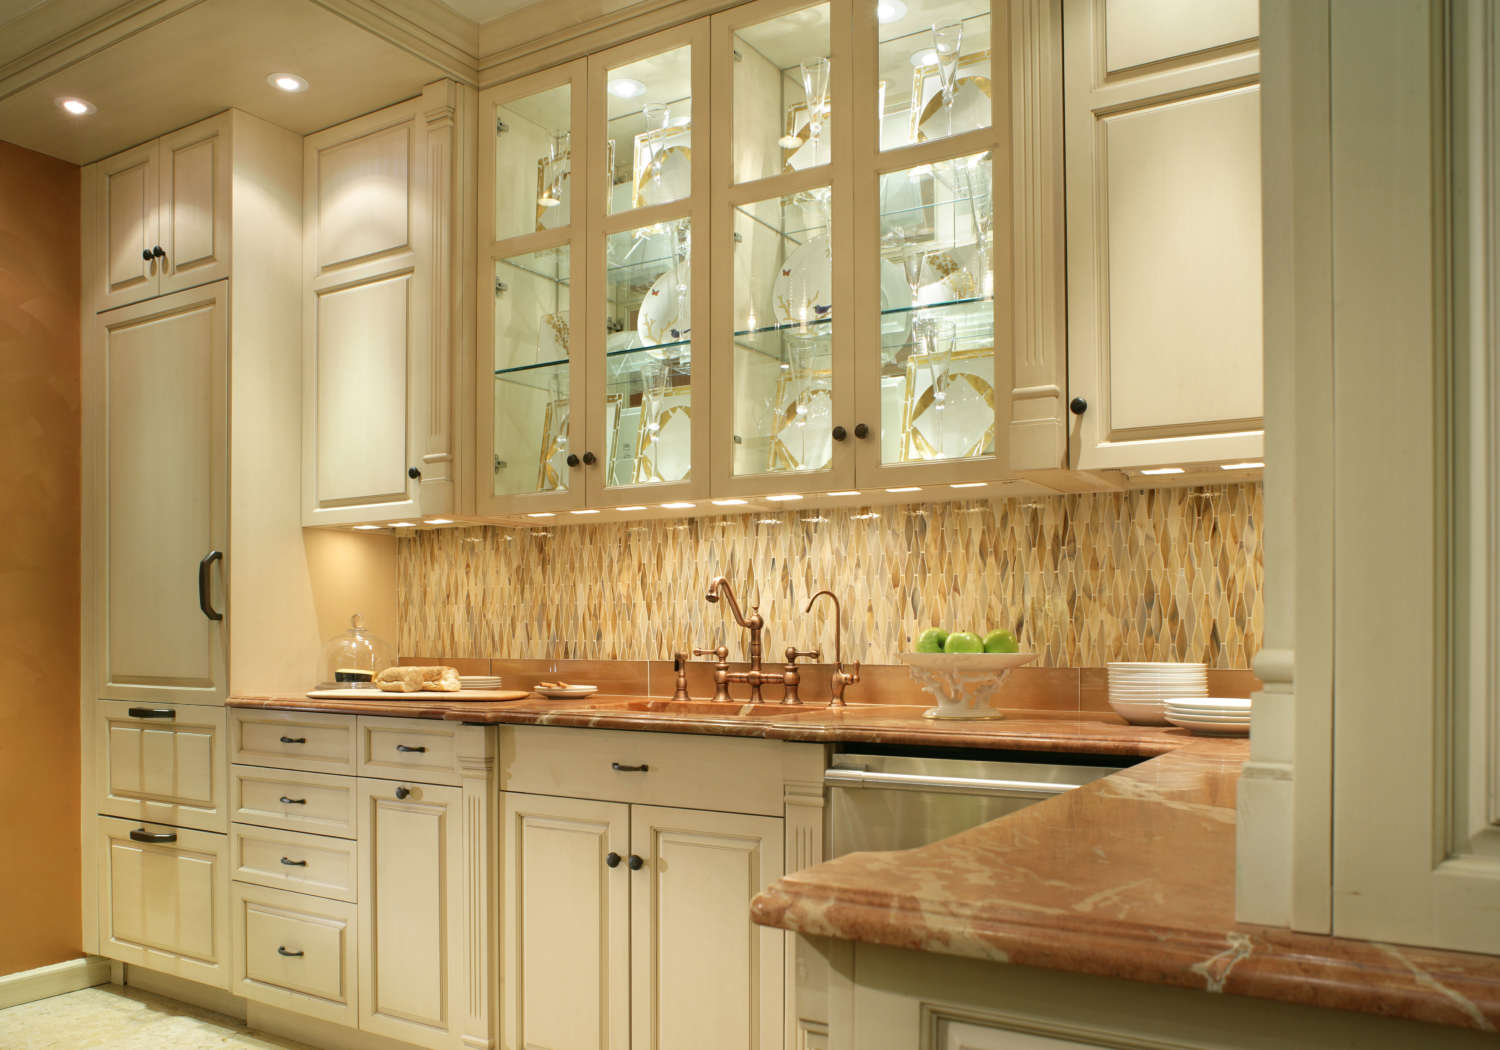 Light-filled butler's pantry features linen white painted fully custom, frameless Rutt Handcrafted Cabinetry with oil-rubbed bronze hardware, toffee-colored marble countertops and a warm-toned geometric backsplash. The interior lit custom china cabinets have glass fronts and reflect off the bronze sink hardware. Design by Regina Bilotta of Bilotta Kitchens.